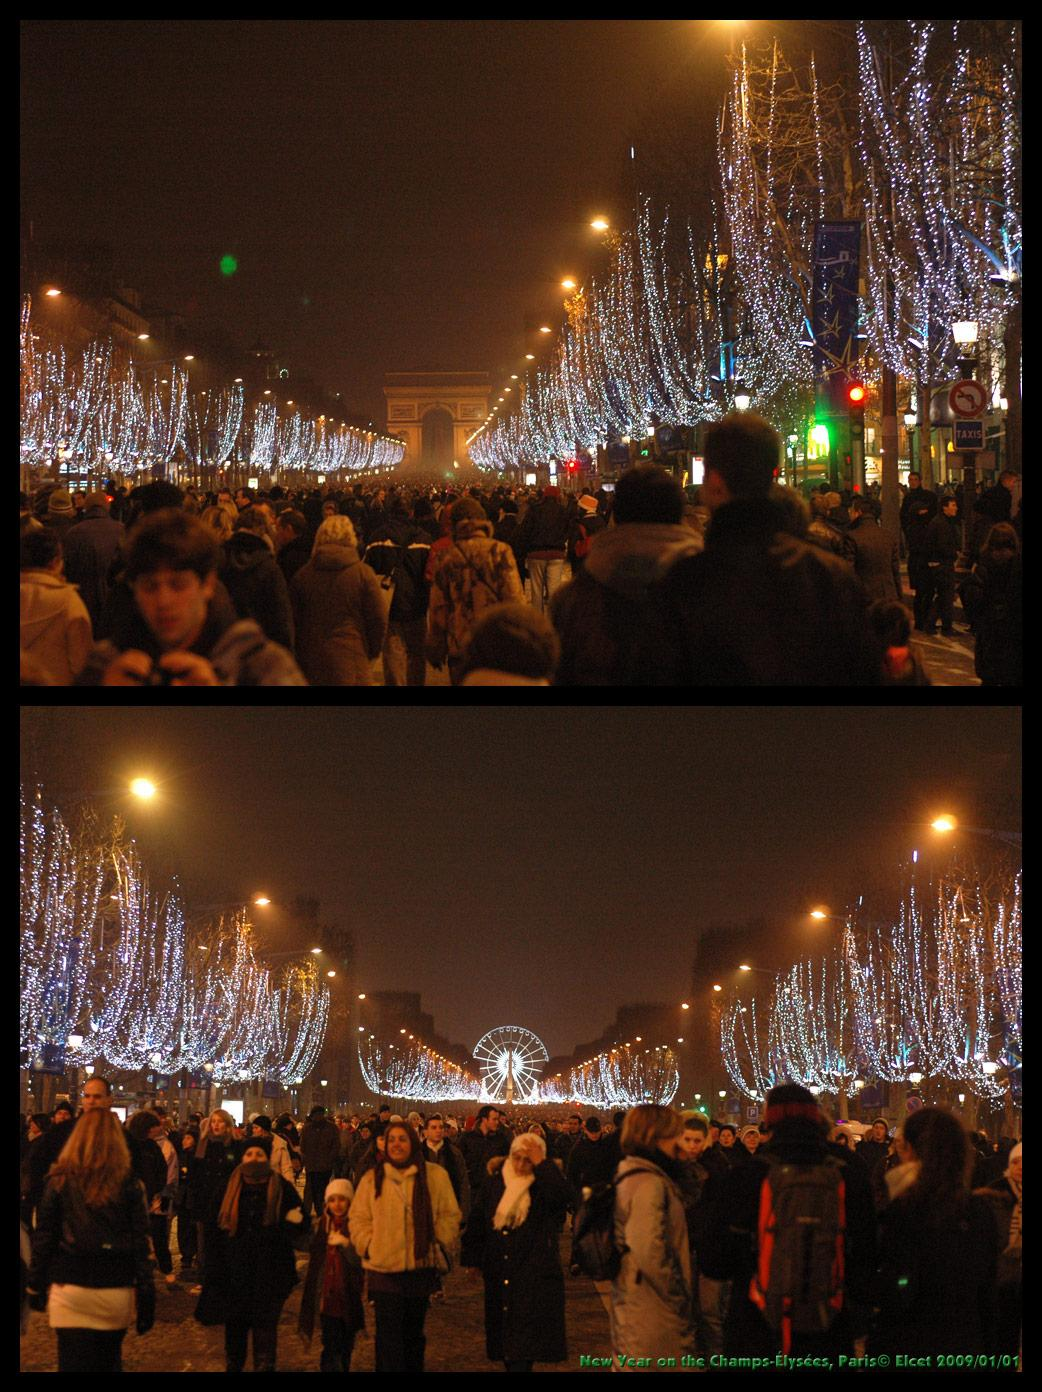 New year on the Champs-Elysees, for my friends by Elcet